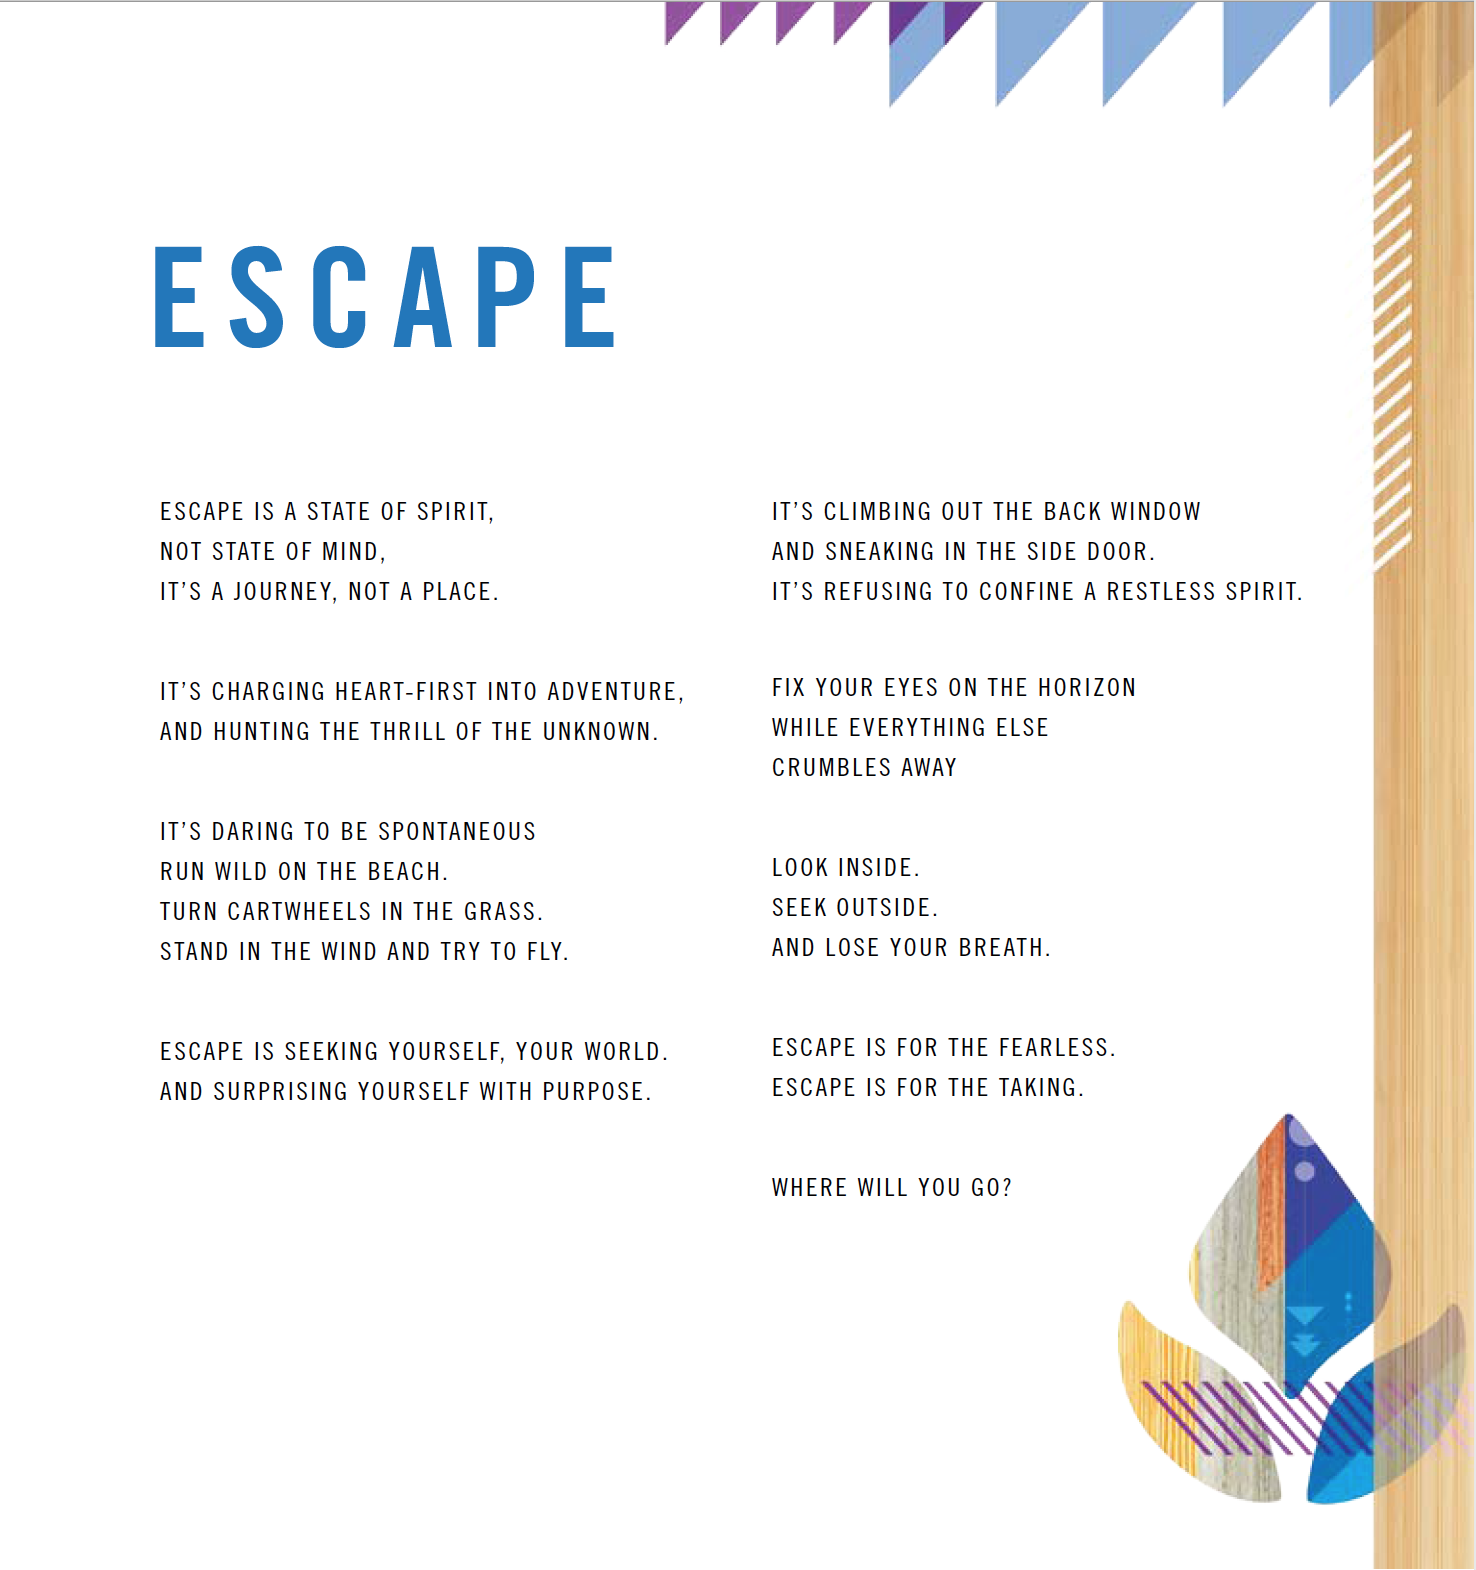 Escape by Reef  //  SET Creative  //  winter 2015